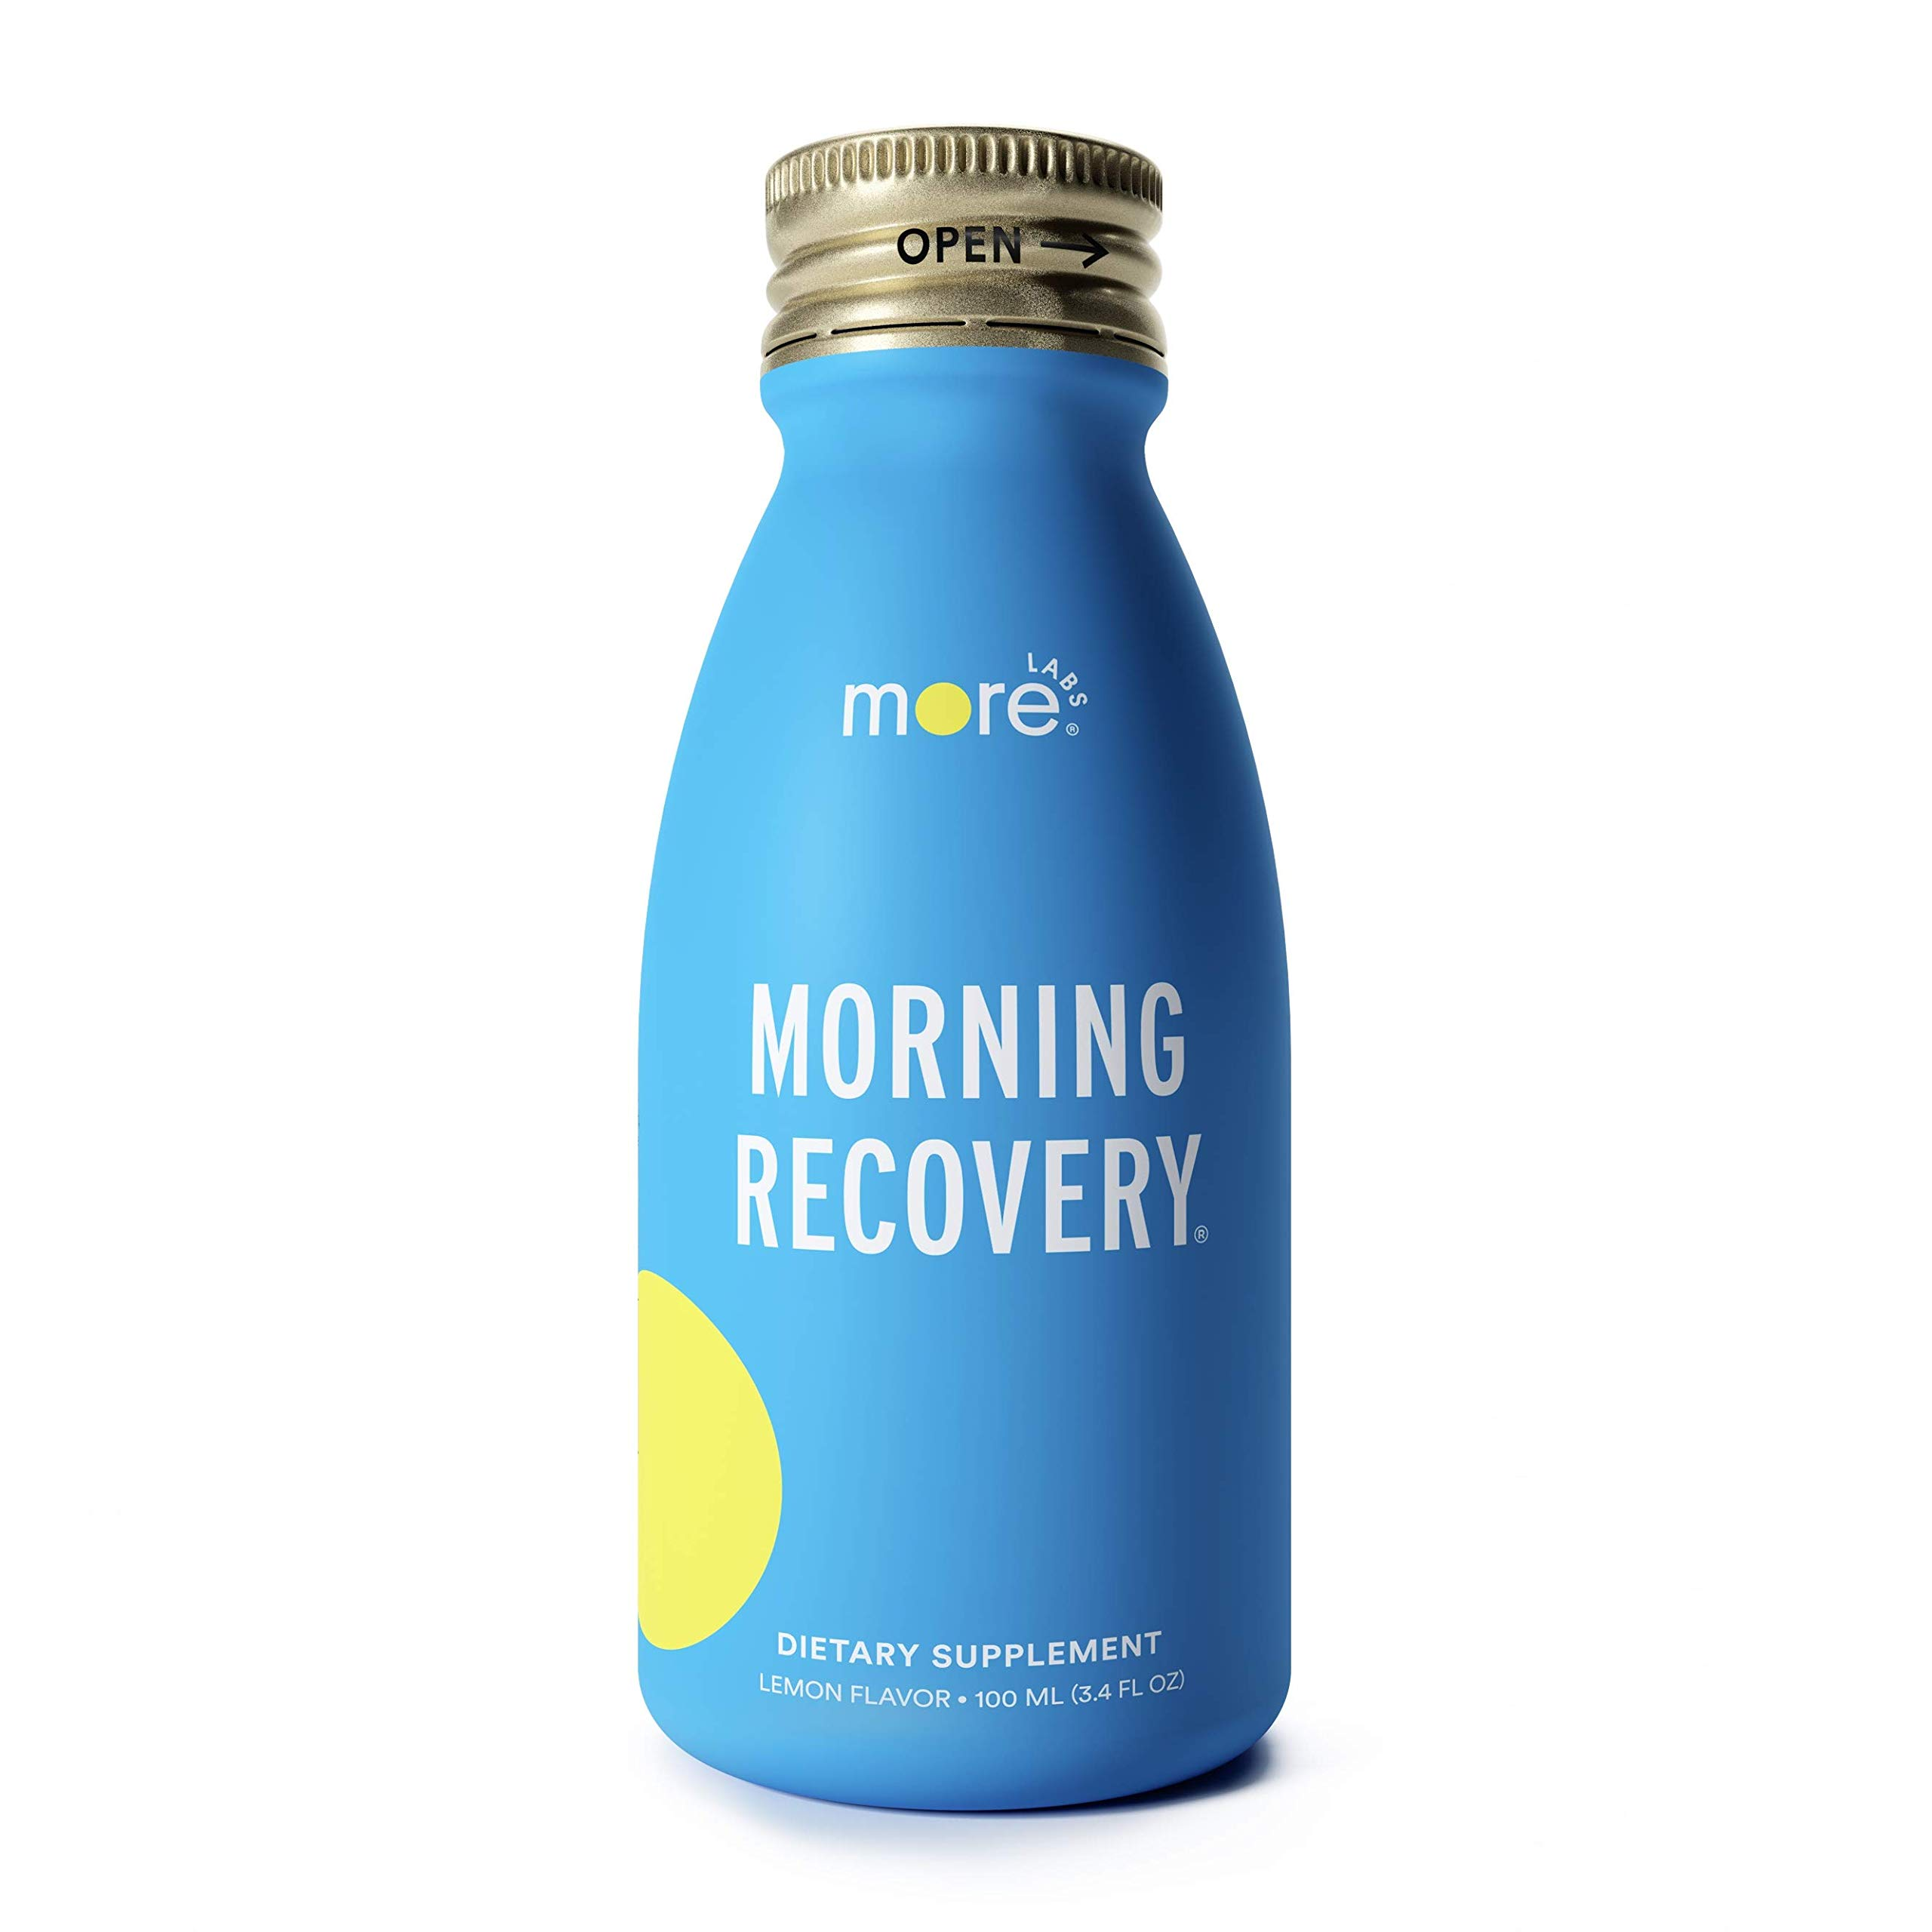 Morning Recovery: Patent-Pending Liver Protection, Hydration Shot (Pack of 6) - New & Improved Original Lemon Flavor - Highly Bioavailable Liquid DHM / Electrolytes - No Artificial Flavors by Morning Recovery